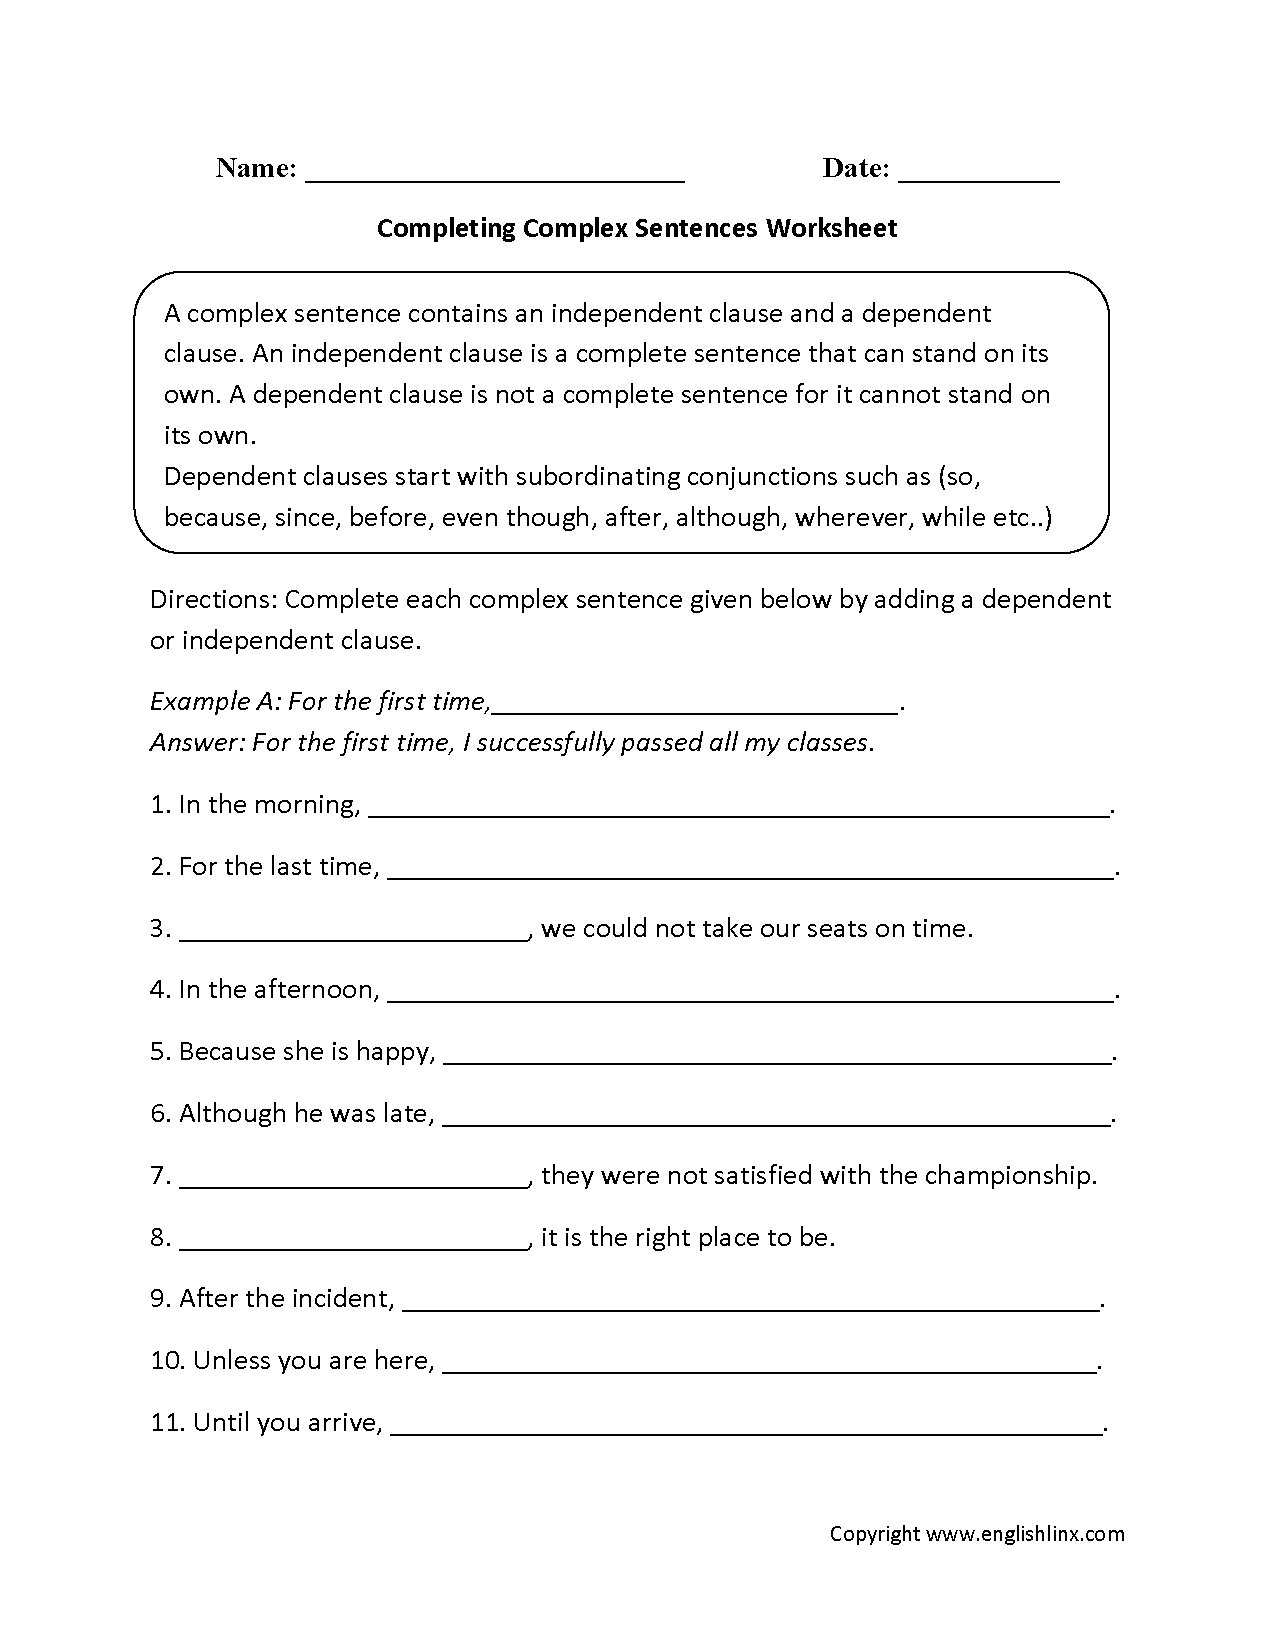 Worksheets Complex Sentences Worksheet sentences worksheets complex worksheets